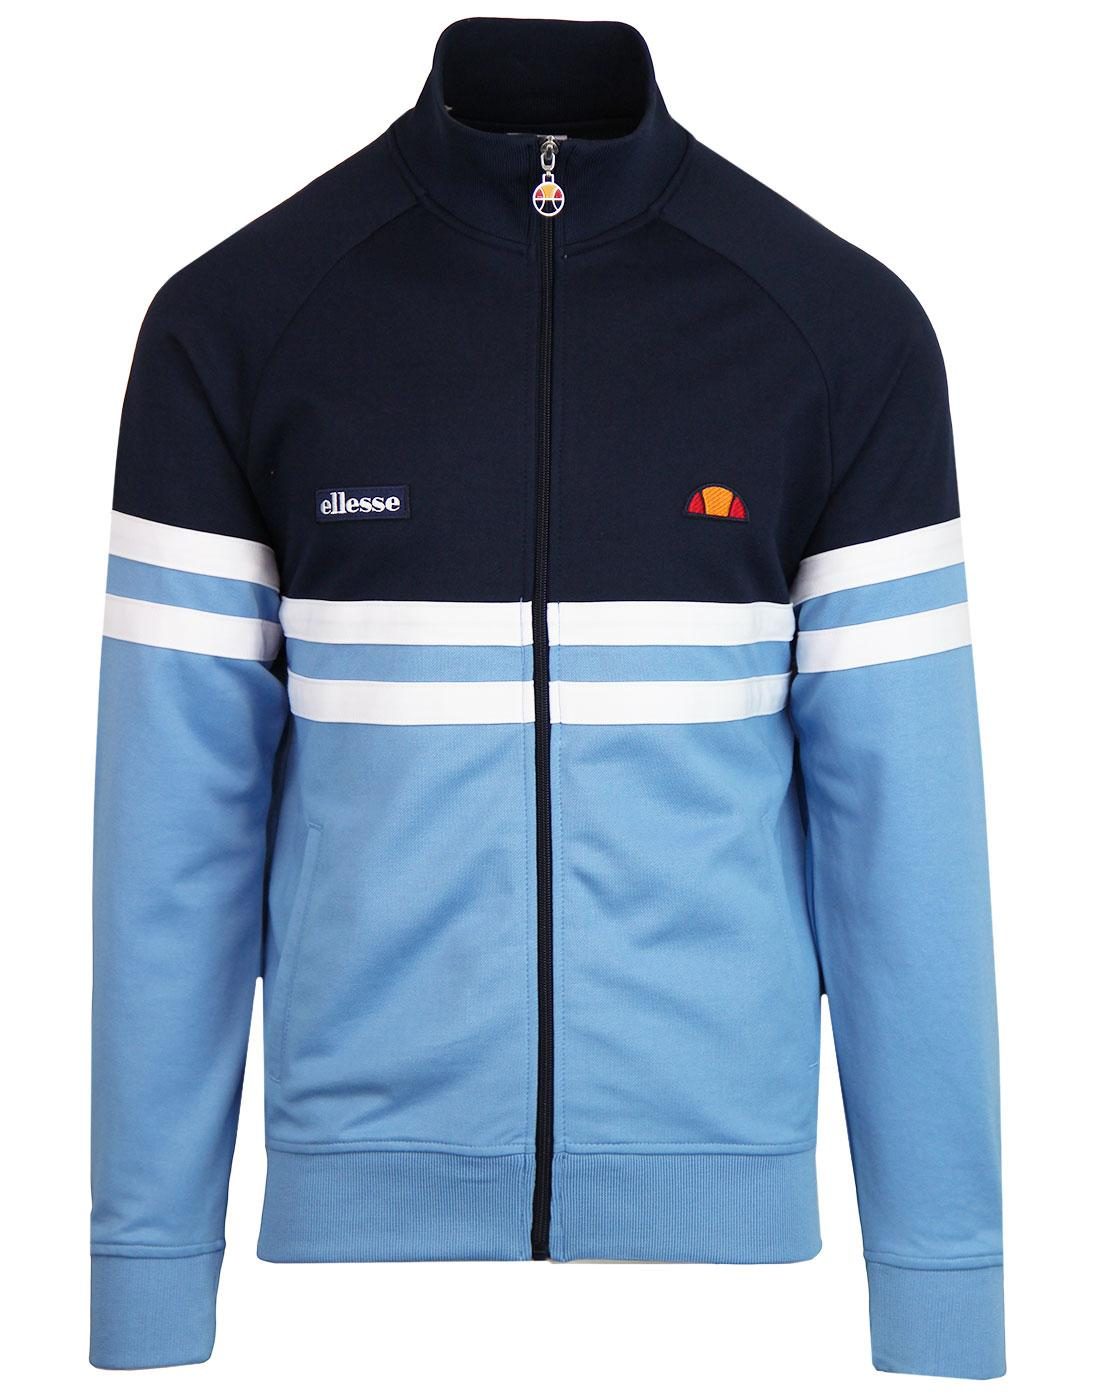 Rimini ELLESSE Retro 80s Panel Stripe Track Top SB